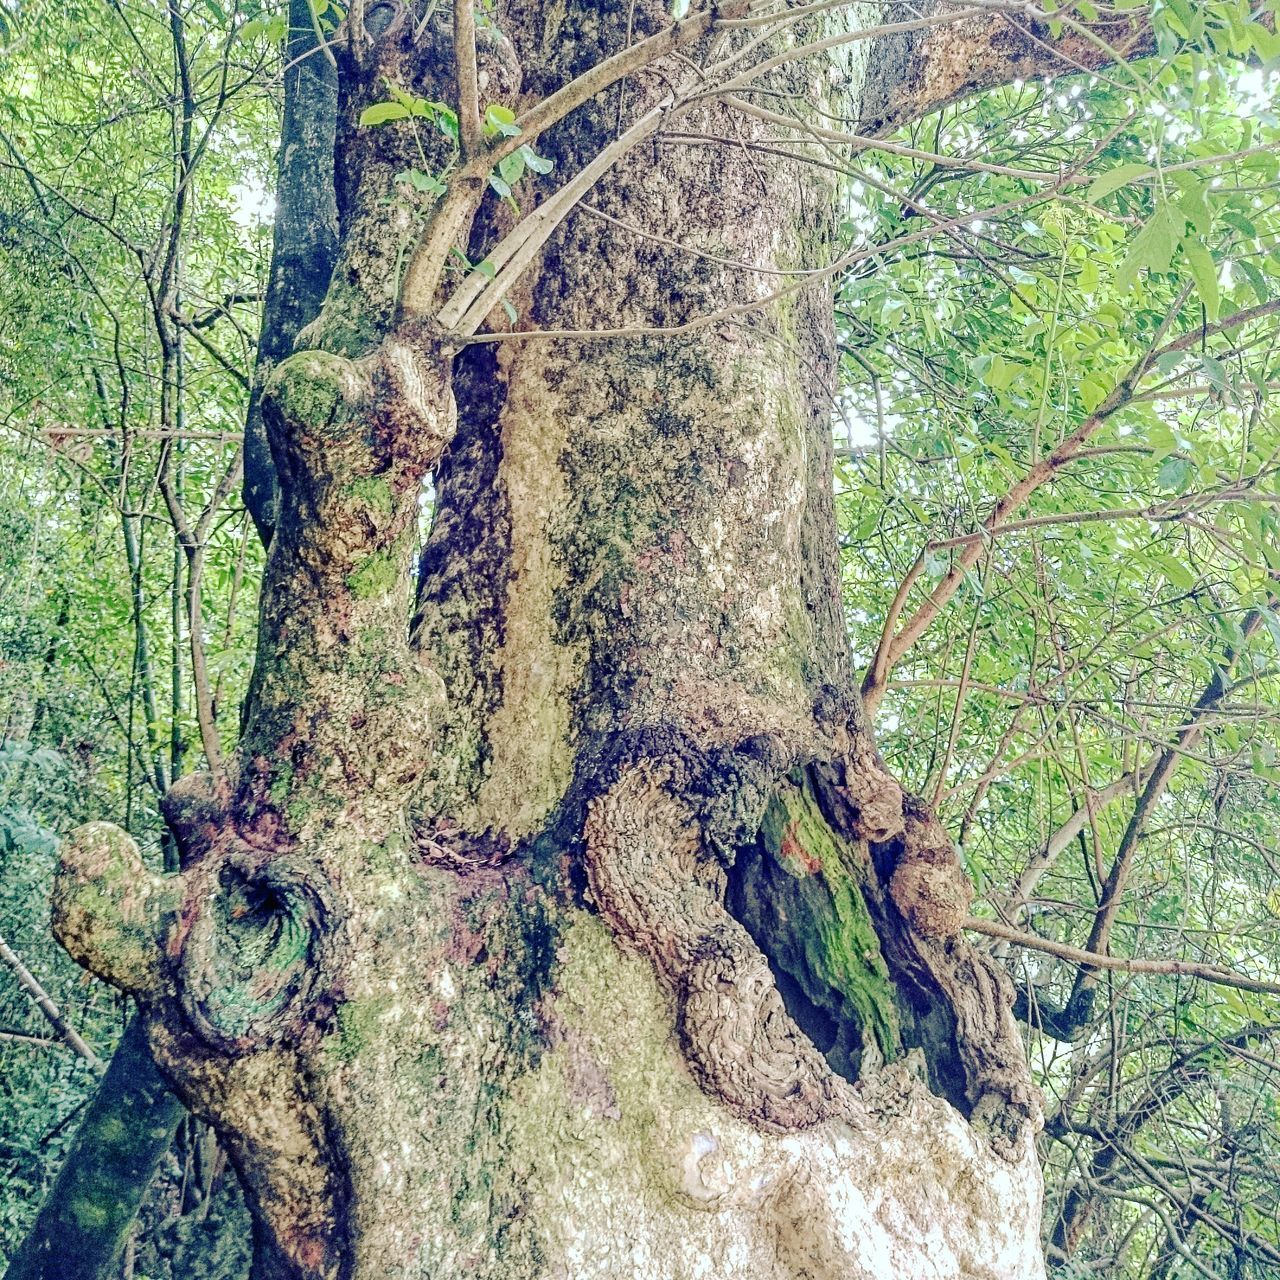 tree, nature, forest, tree trunk, branch, day, no people, growth, moss, green color, outdoors, plant, beauty in nature, leaf, close-up, dead tree